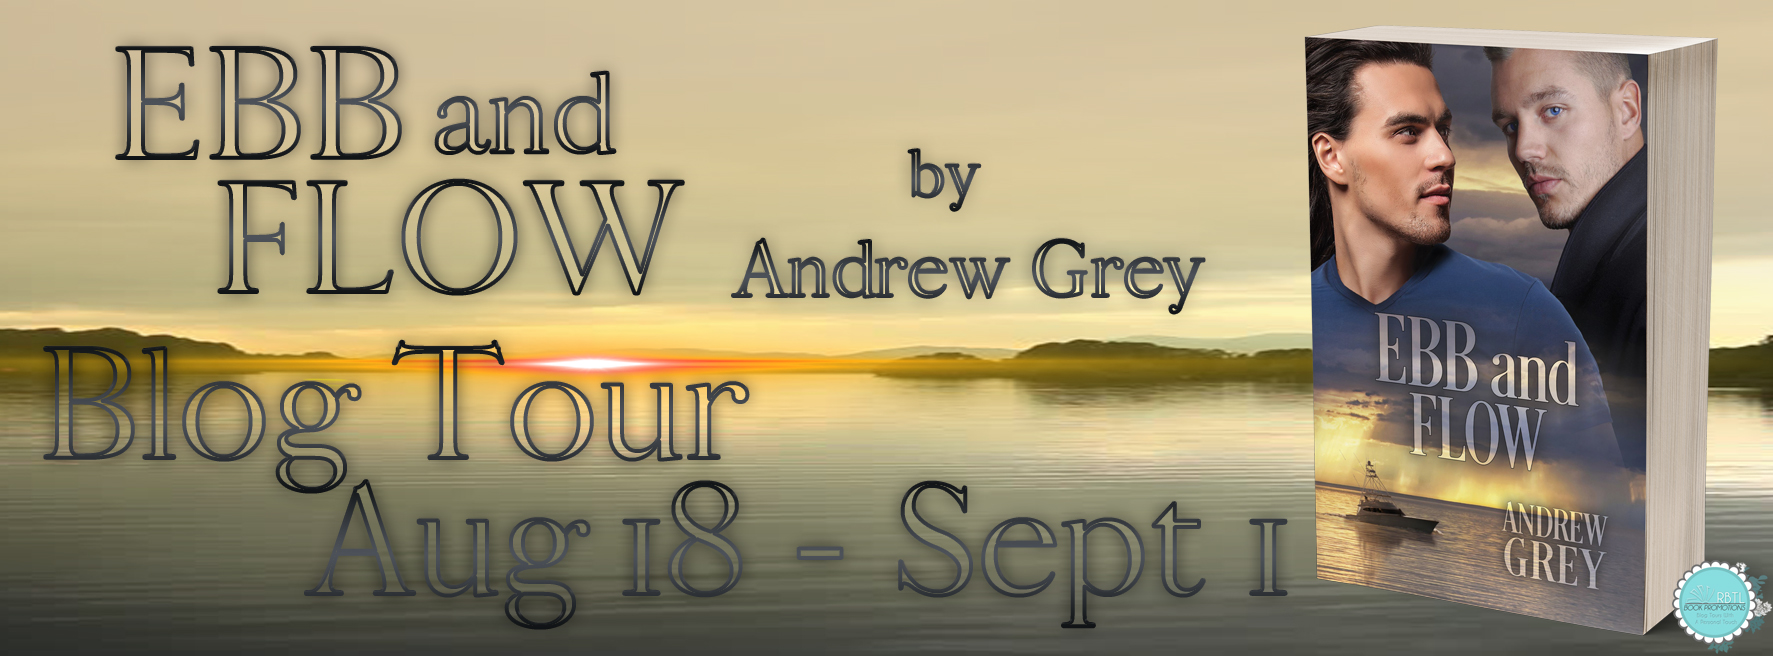 Ebb and Flow Blog Tour Banner 2